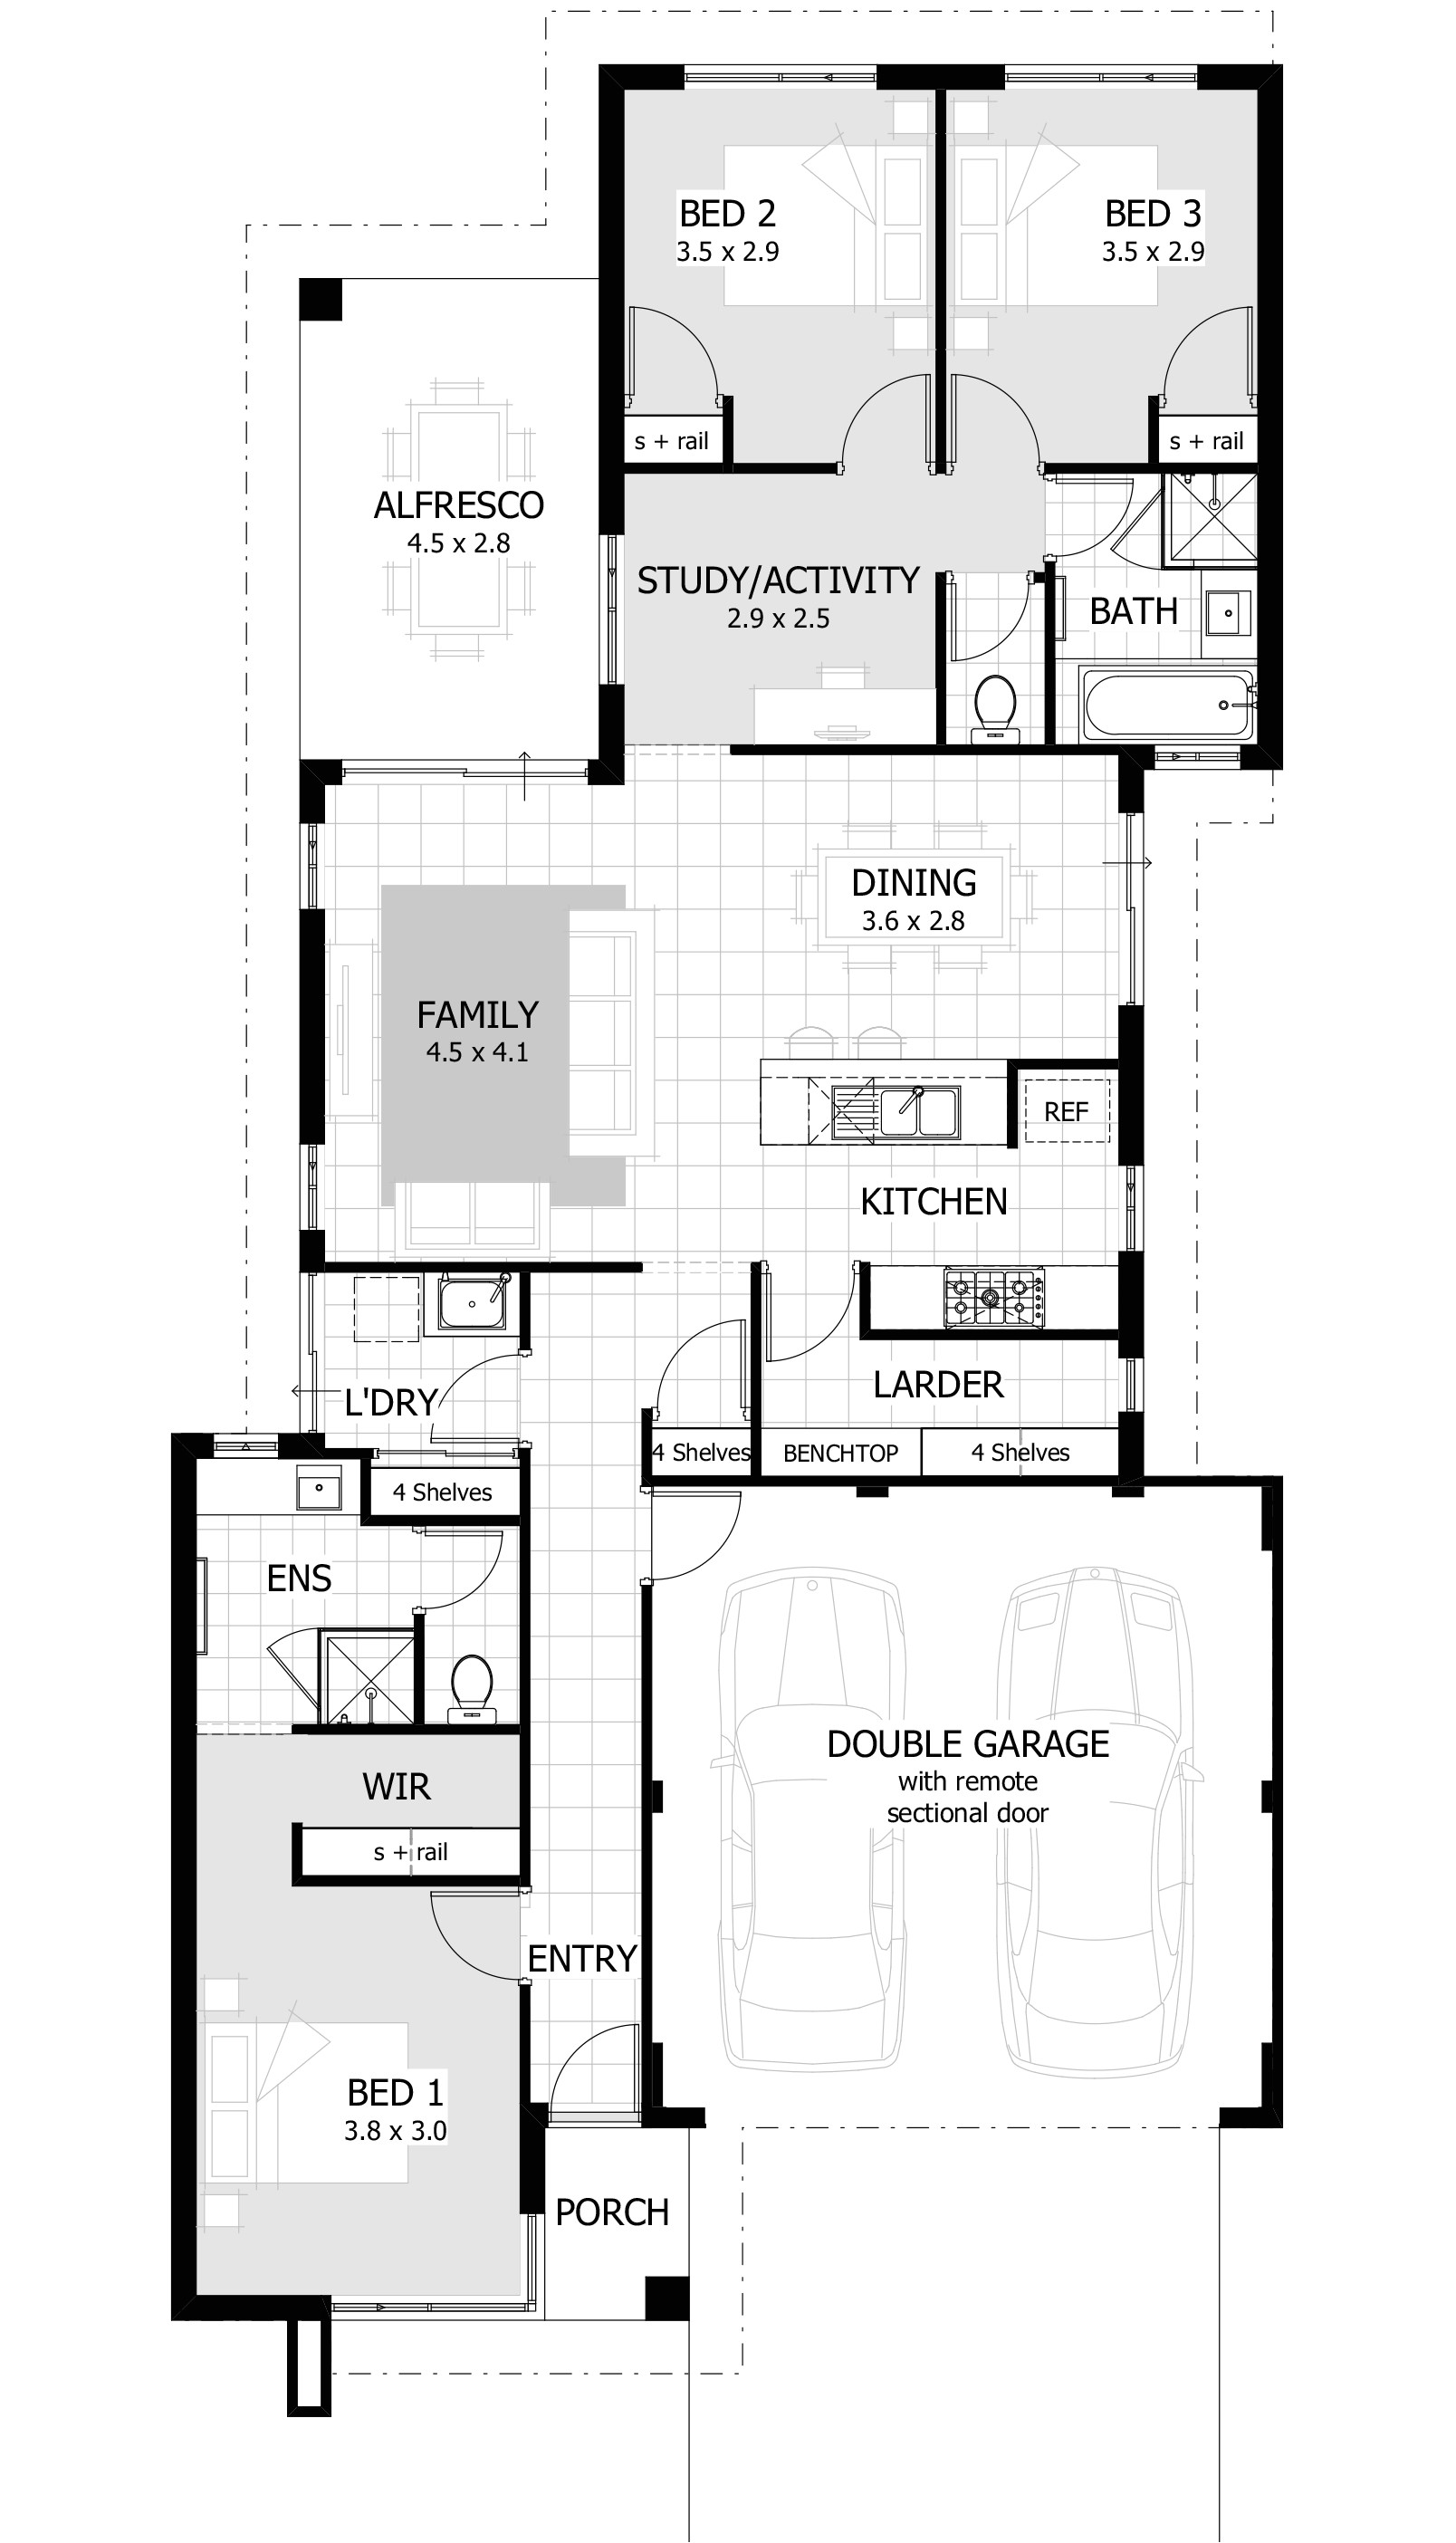 3 bedroom home designs plans